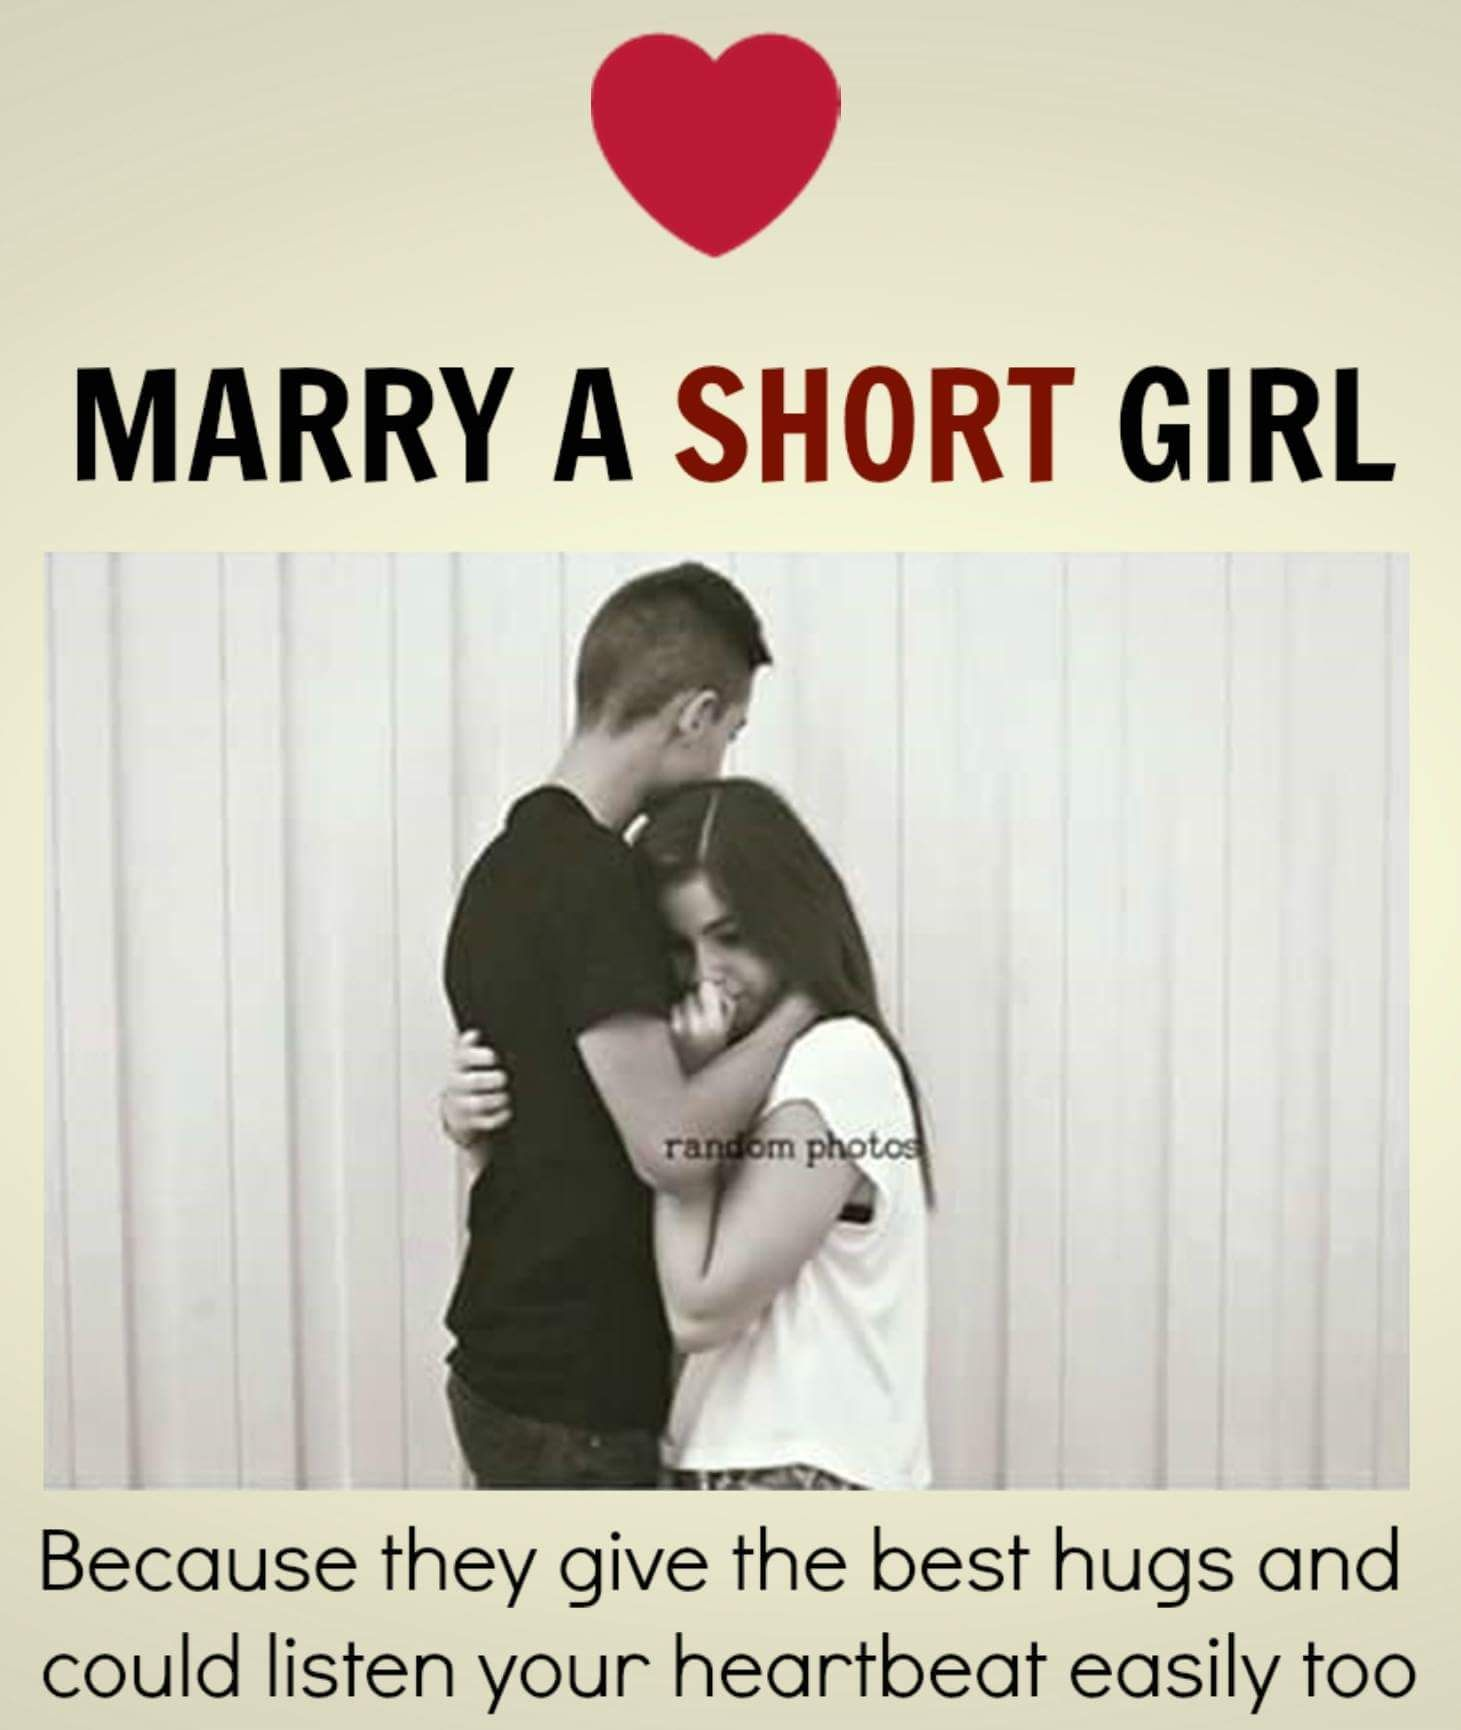 Marry A Short Girl Because They Give The Best Hugs And Could Listen To Your Heart Beat Easily Too Hugs Quotes Funny Hug Quotes Love Friendship Quotes